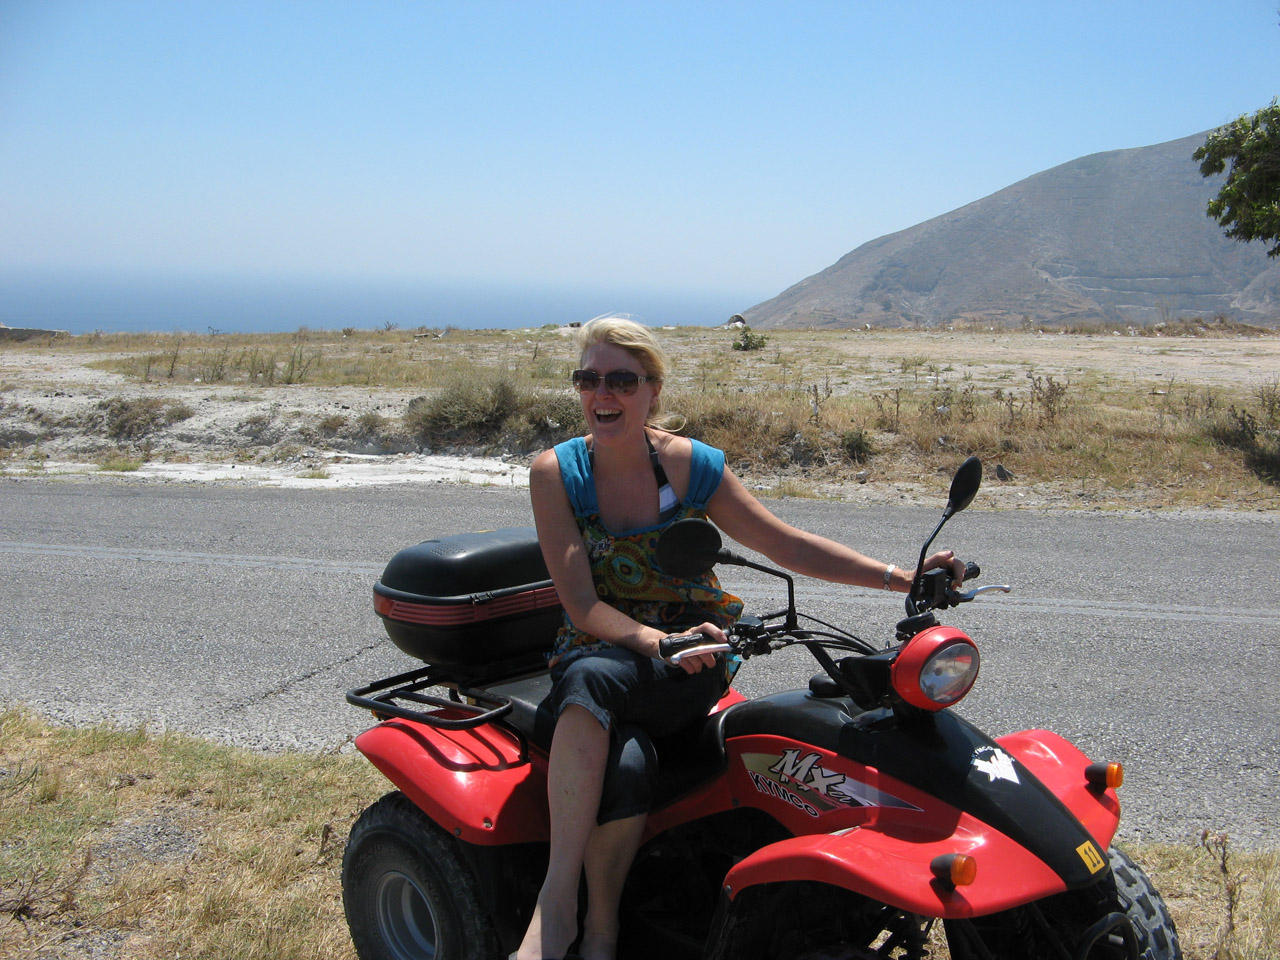 Debs on one of the Quad bikes